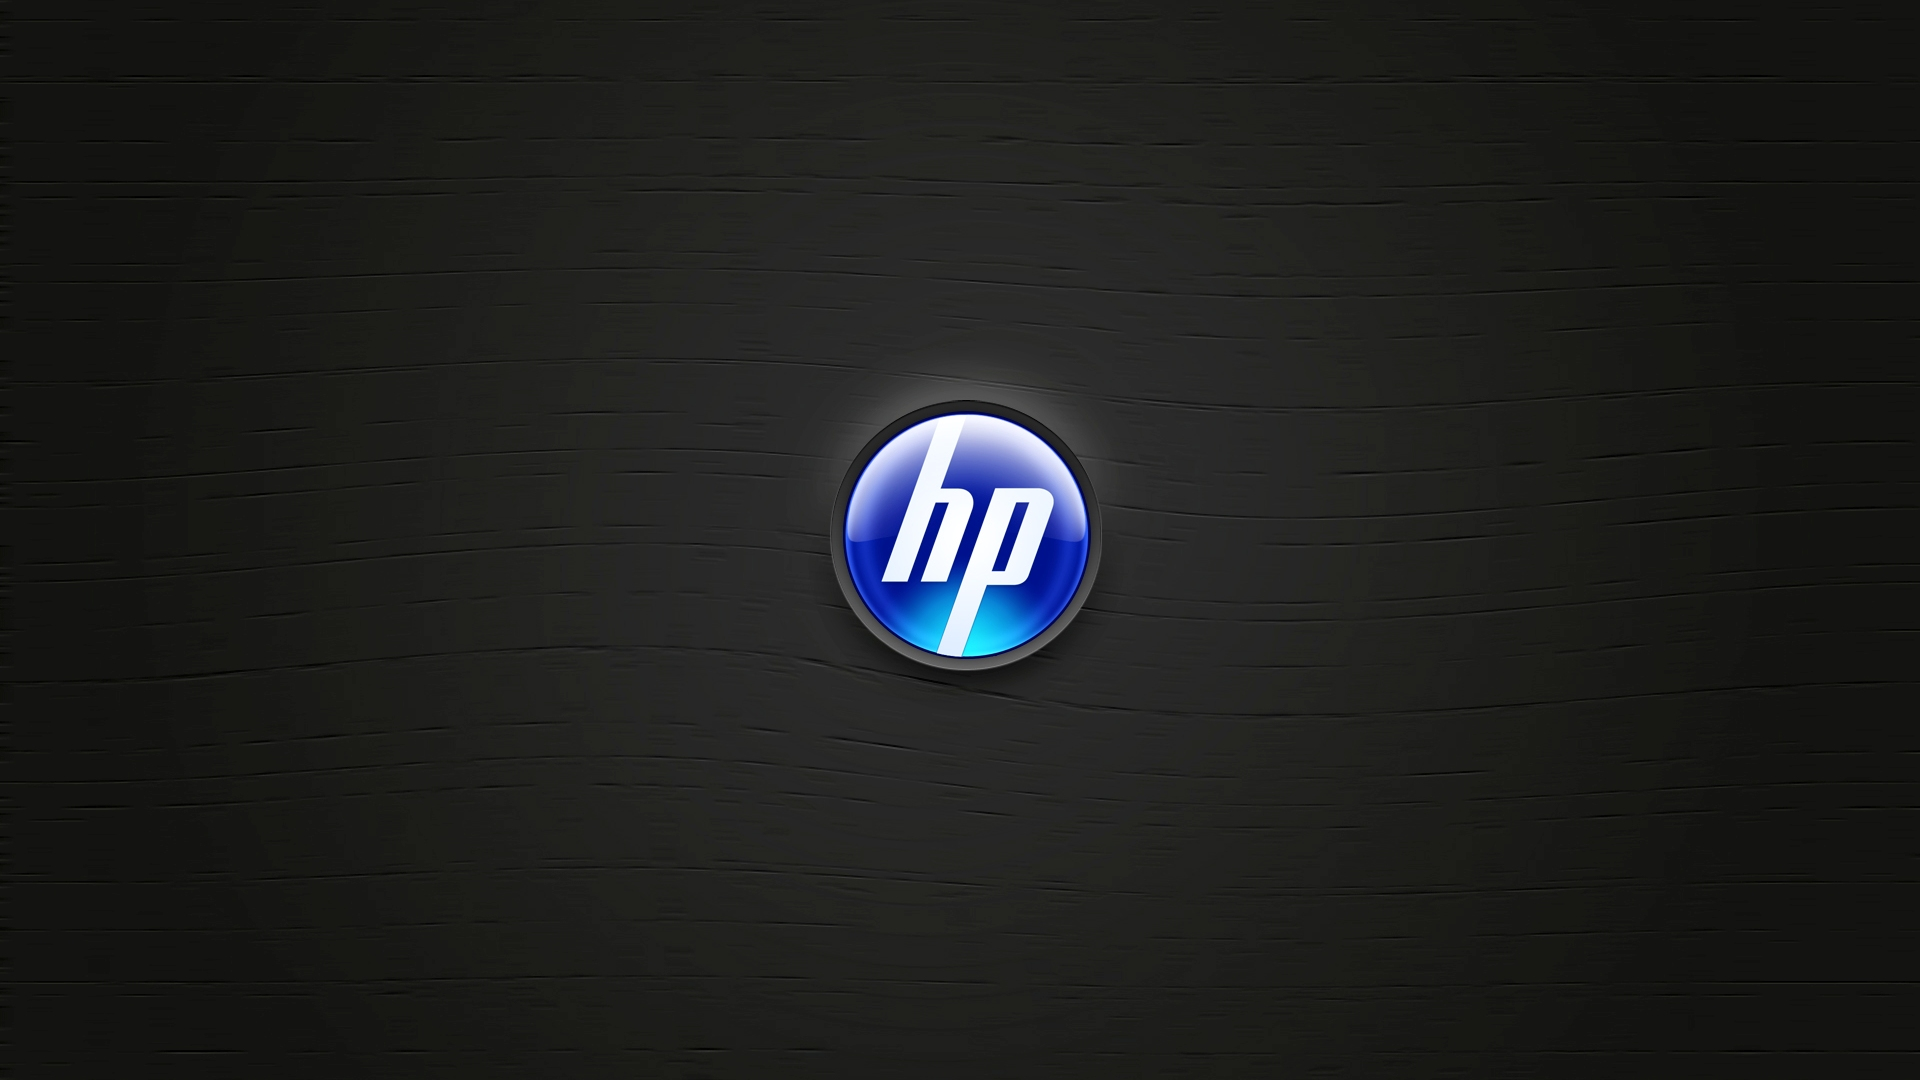 Hp 3D Backgrounds - HD Wallpapers